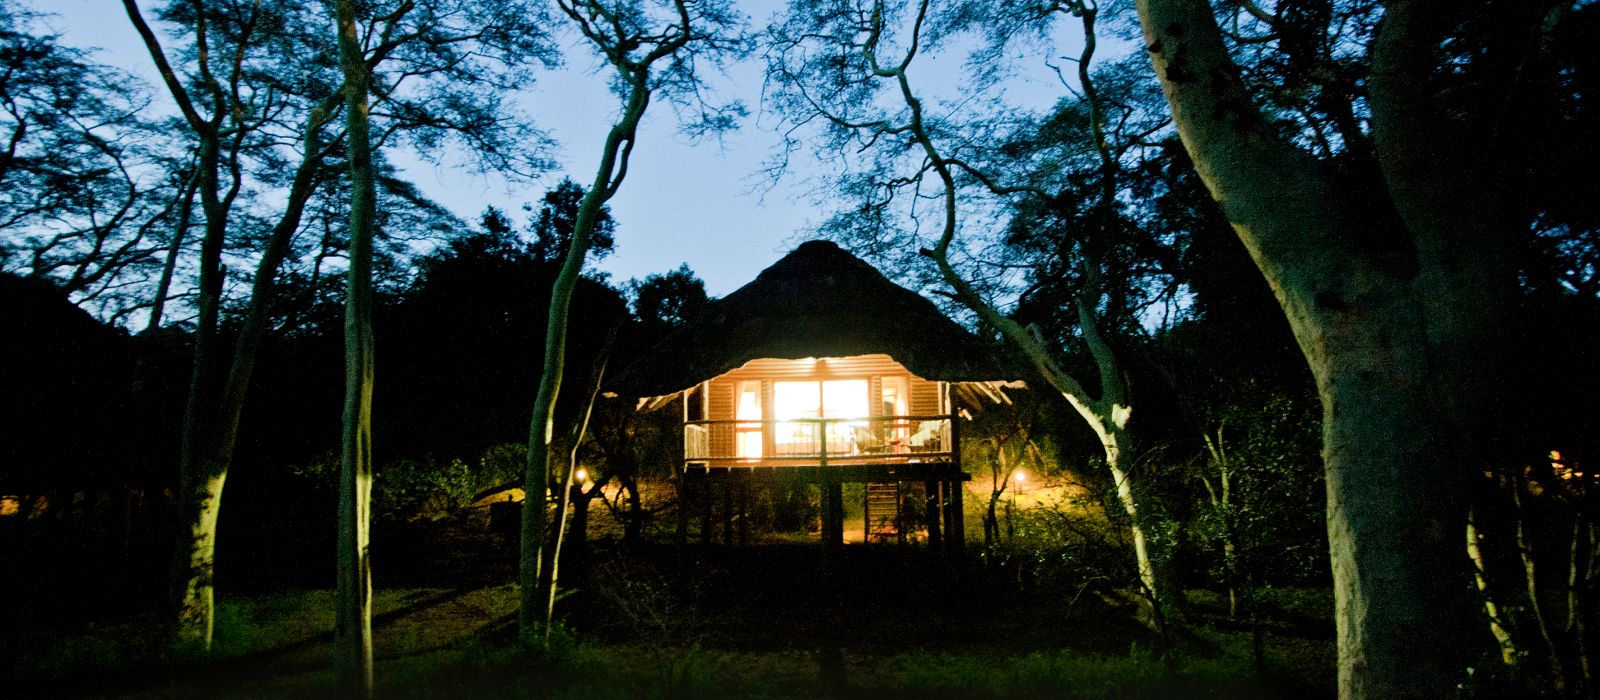 Hotel Zululand Tree Lodge South Africa